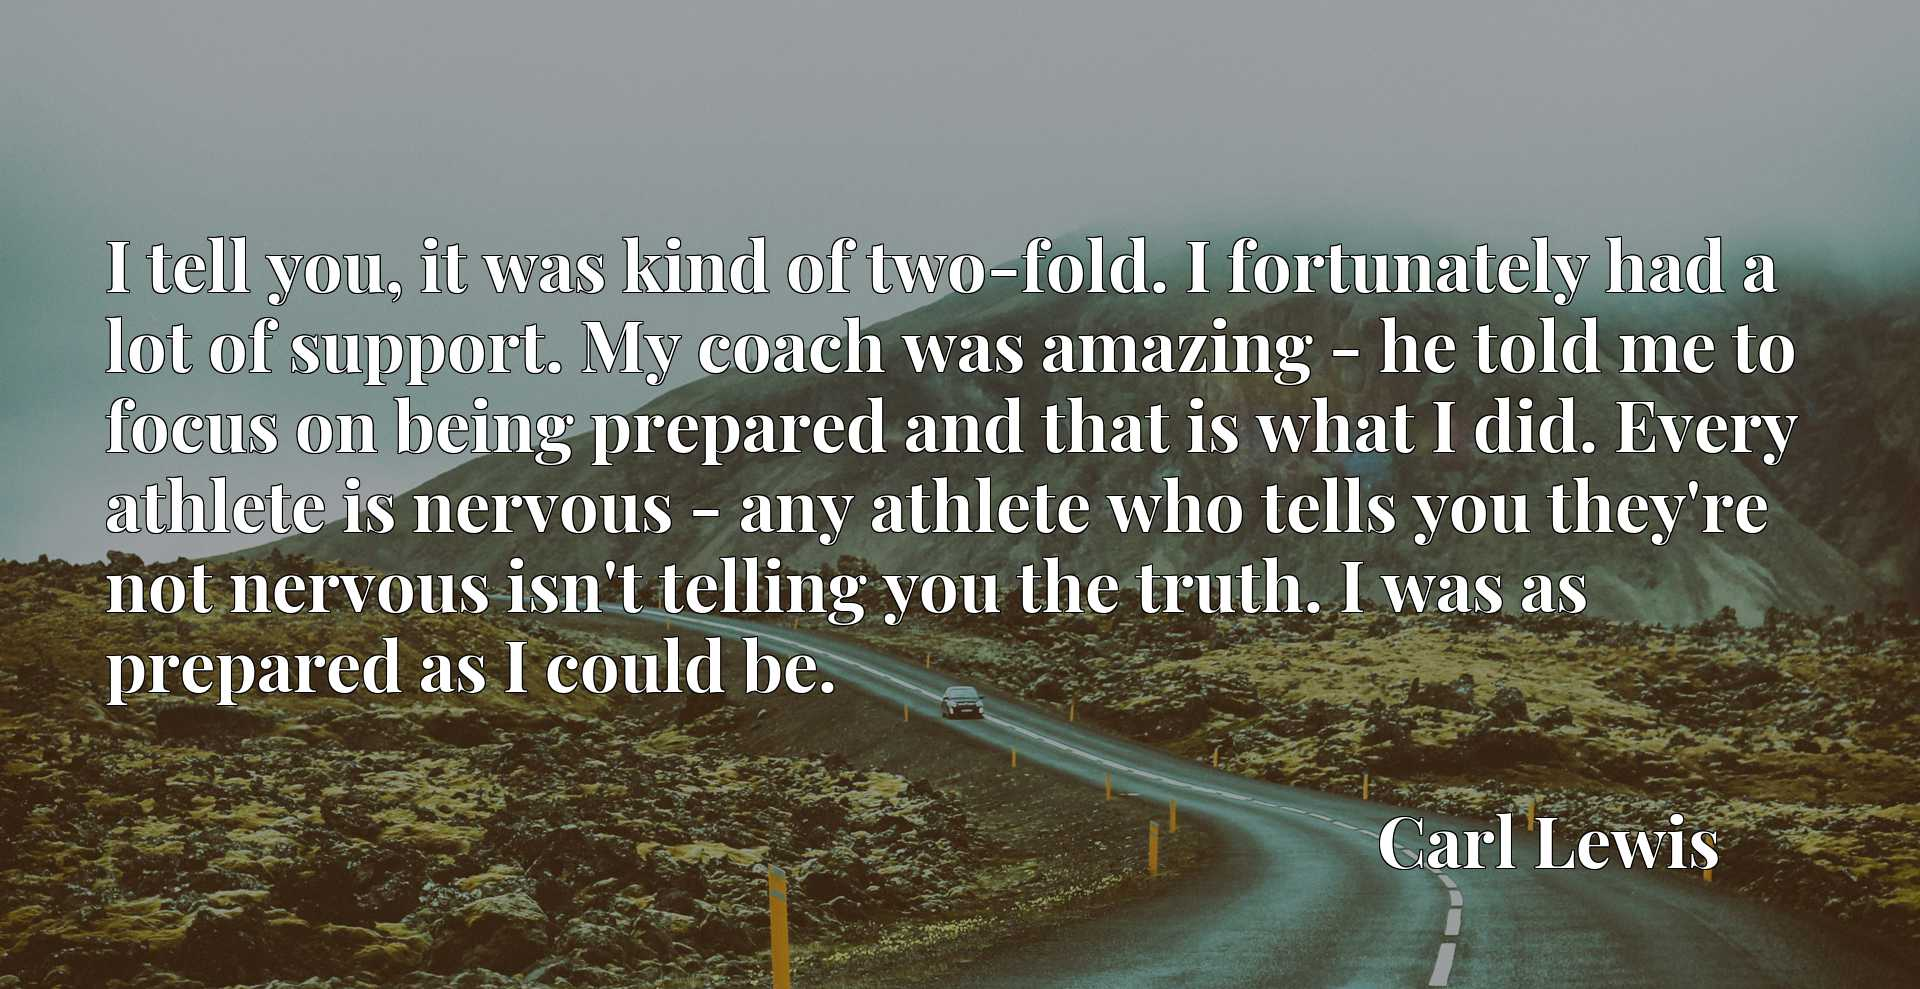 I tell you, it was kind of two-fold. I fortunately had a lot of support. My coach was amazing - he told me to focus on being prepared and that is what I did. Every athlete is nervous - any athlete who tells you they're not nervous isn't telling you the truth. I was as prepared as I could be.